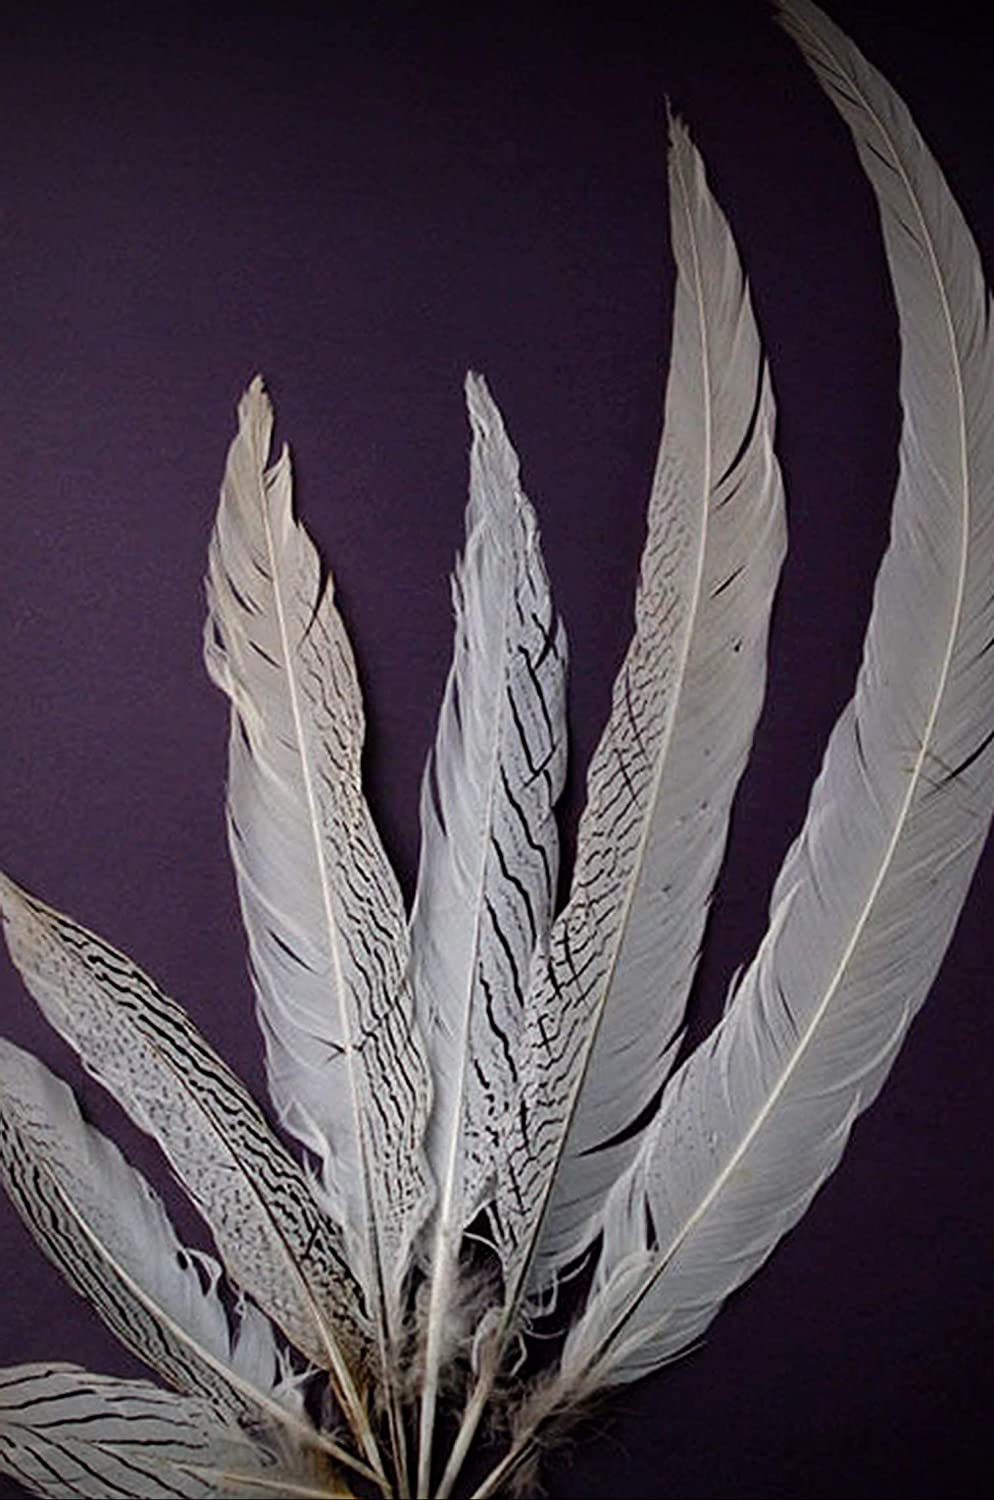 1 Packet of 3 Pcs Silver Pheasant Natural Crafting Feathers 22-24